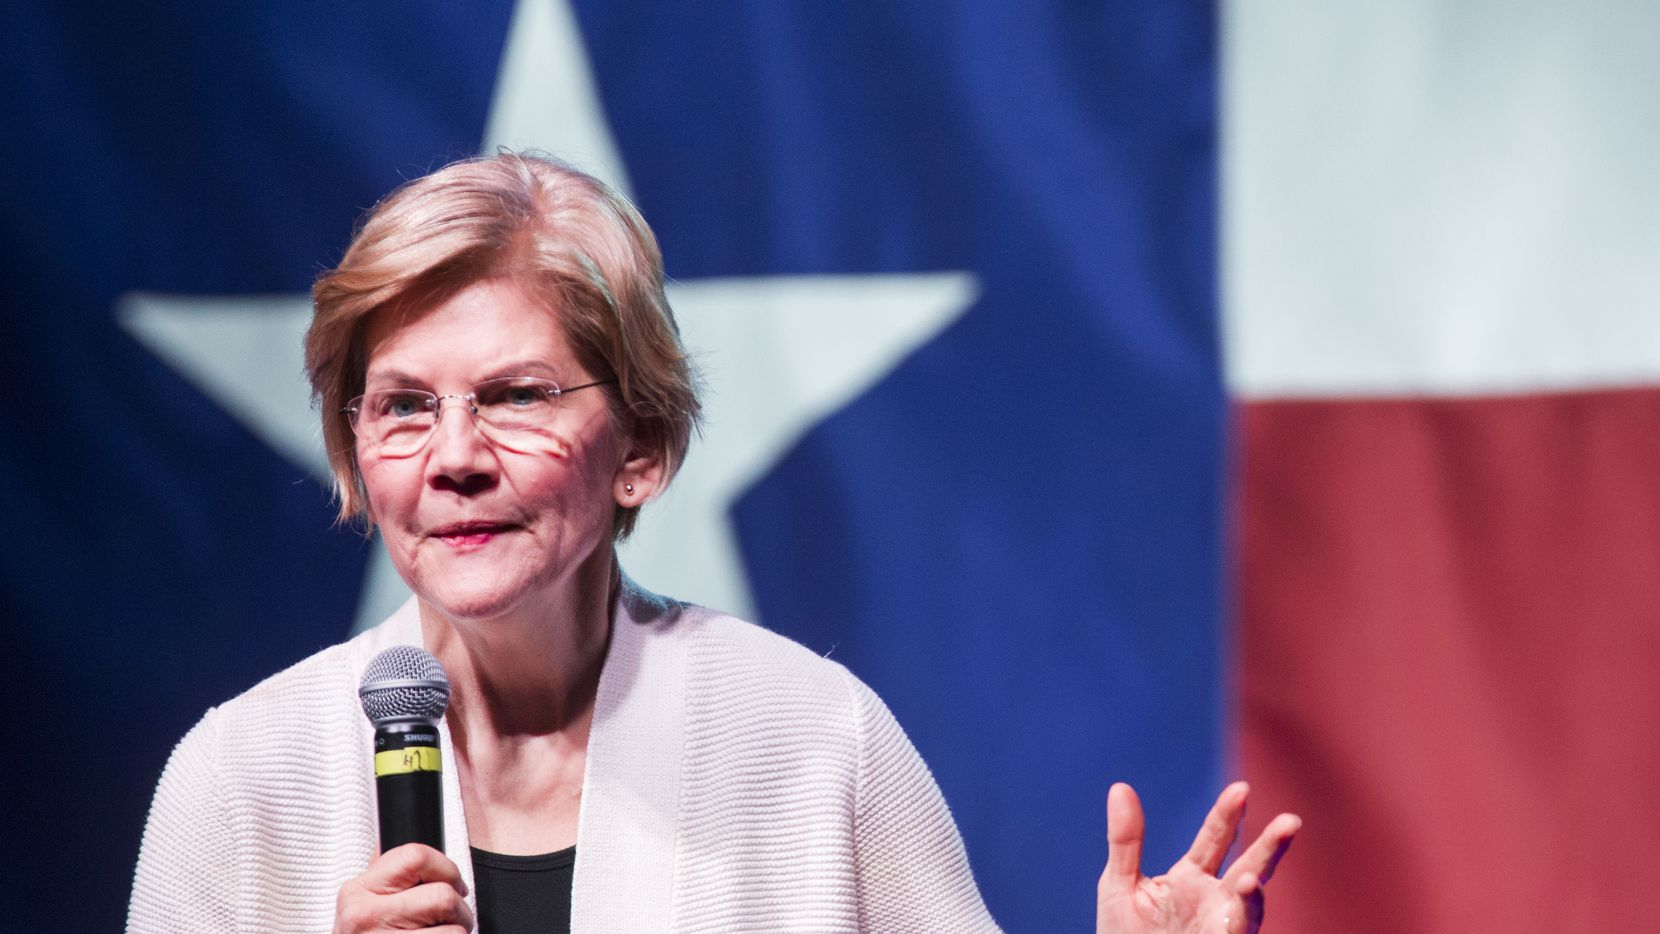 Sen. Elizabeth Warren (D-MA), one of several candidates running for the Democratic Party's primary nomination in the 2020 presidential election, spoke during a campaign stop at the Granada Theater in Dallas on Sunday, March 10, 2019. After speaking, Warren fielded questions from the audience and took pictures with attendees.